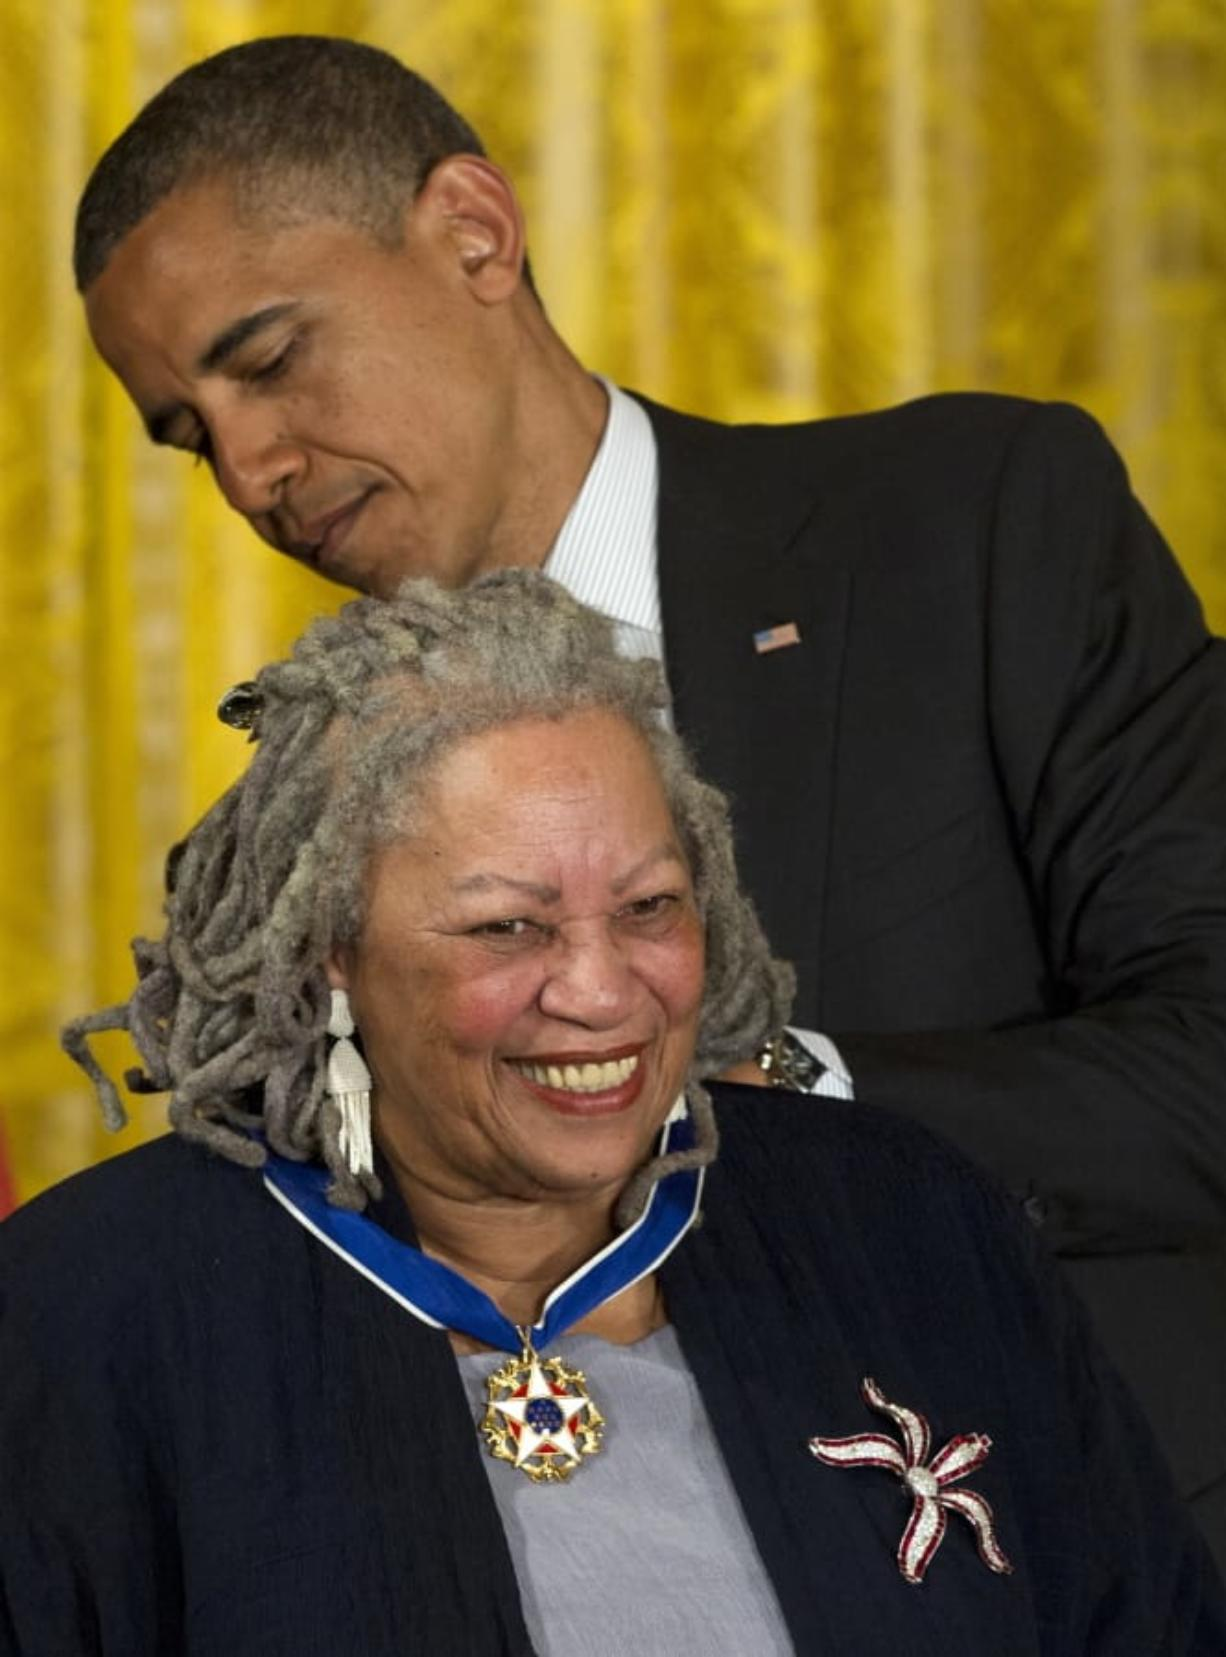 President Barack Obama awards author Toni Morrison with a Medal of Freedom, during a May 29, 2012 ceremony in the East Room of the White House in Washington. Associated Press files